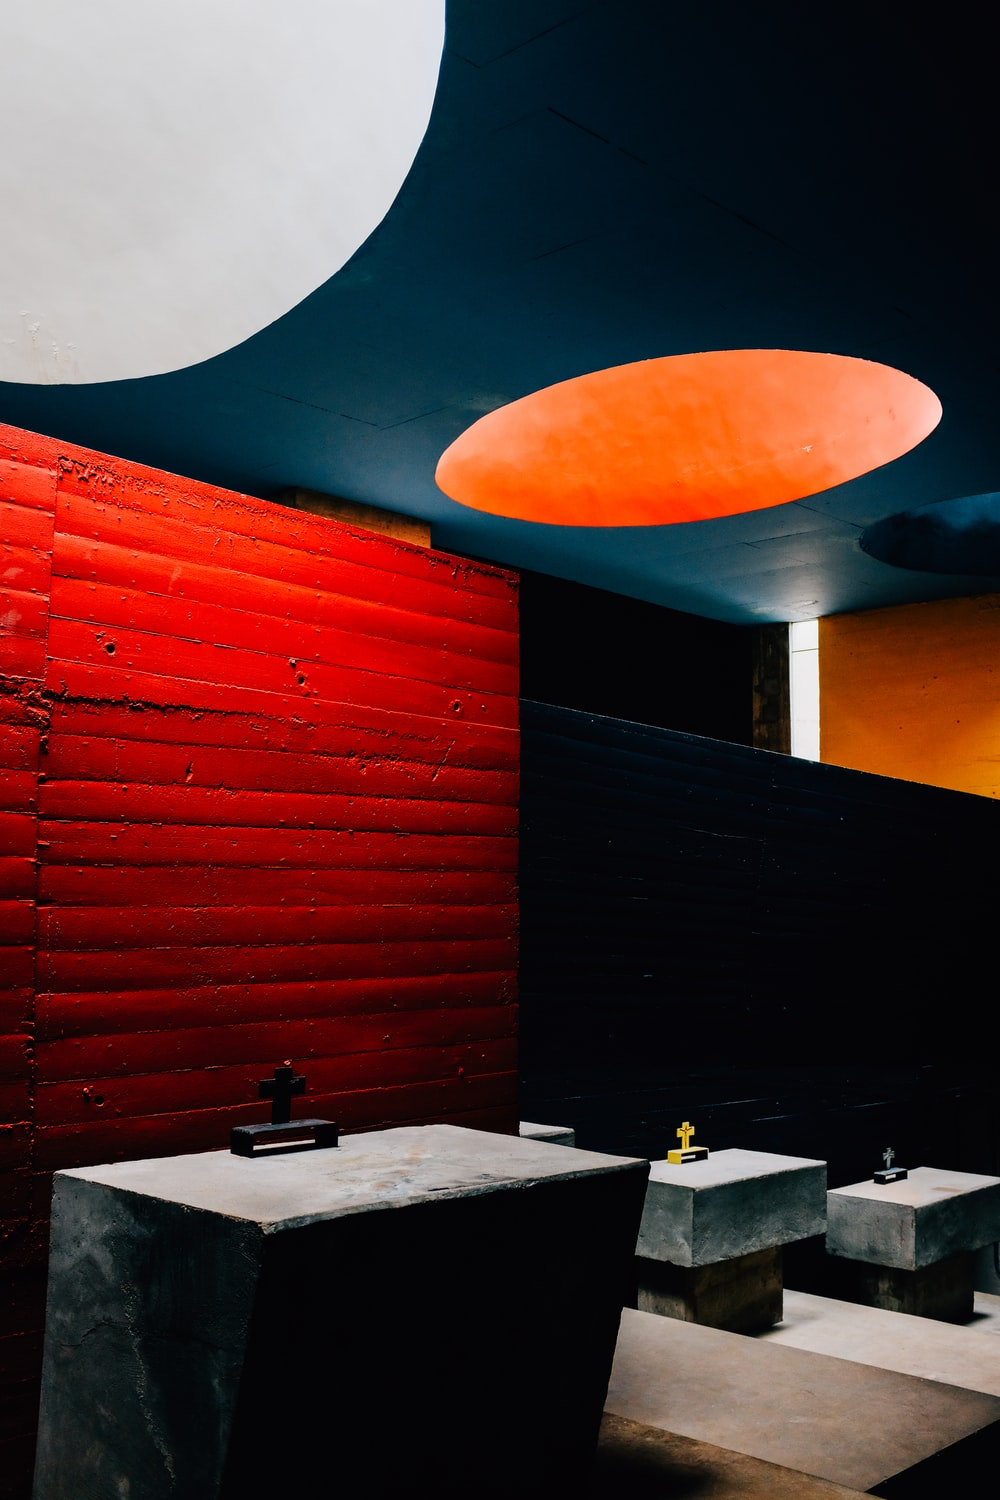 red and black wall with white ceramic sink